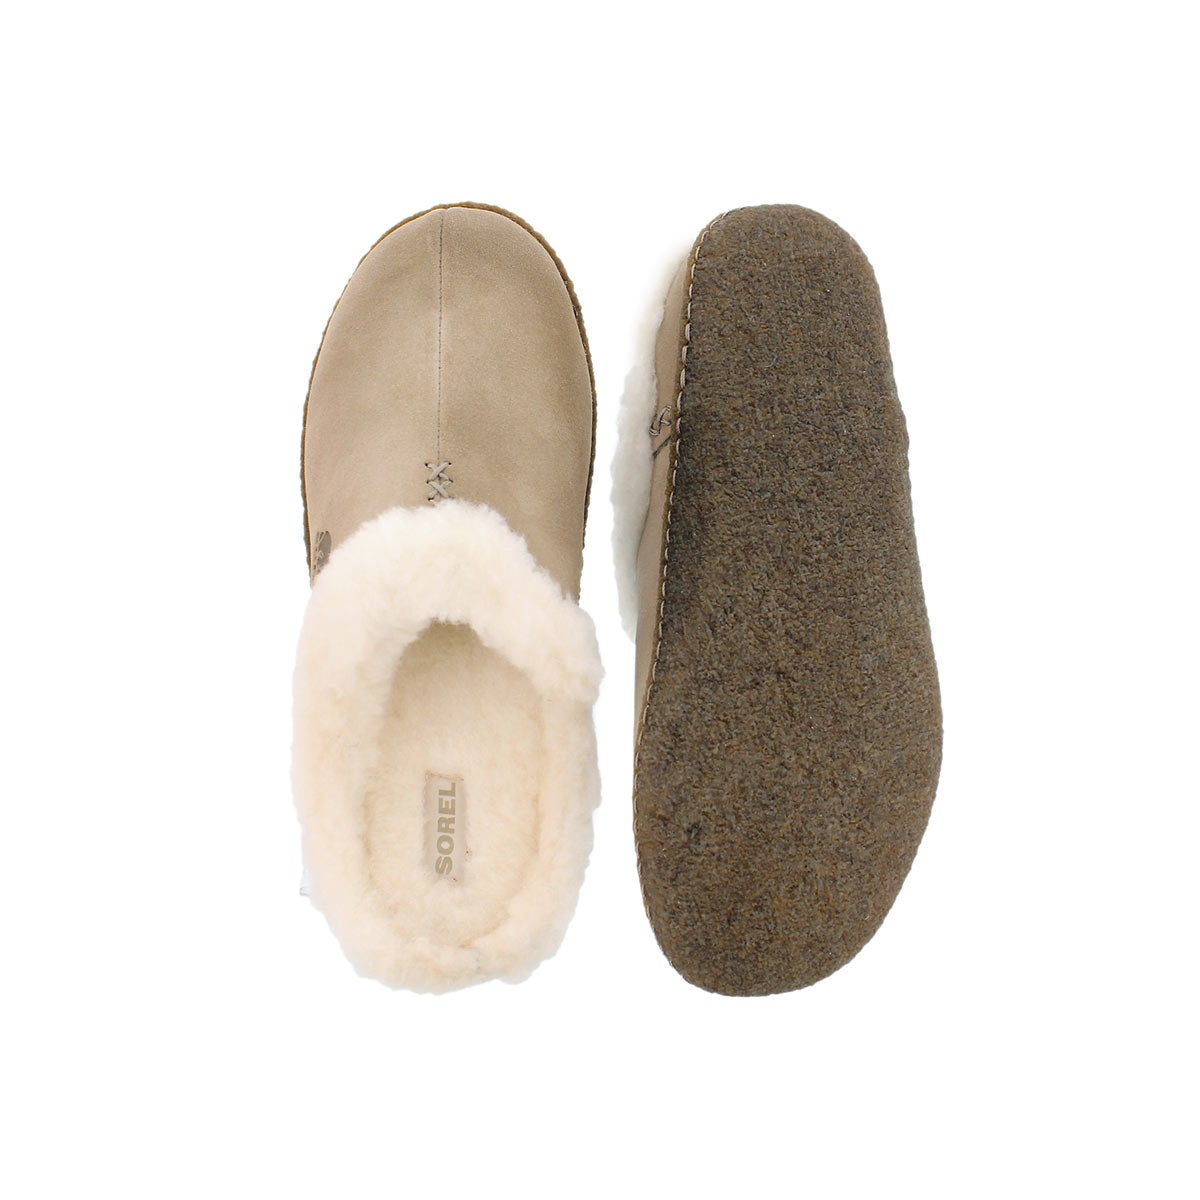 Lds Nakiska Slide incense suede slipper